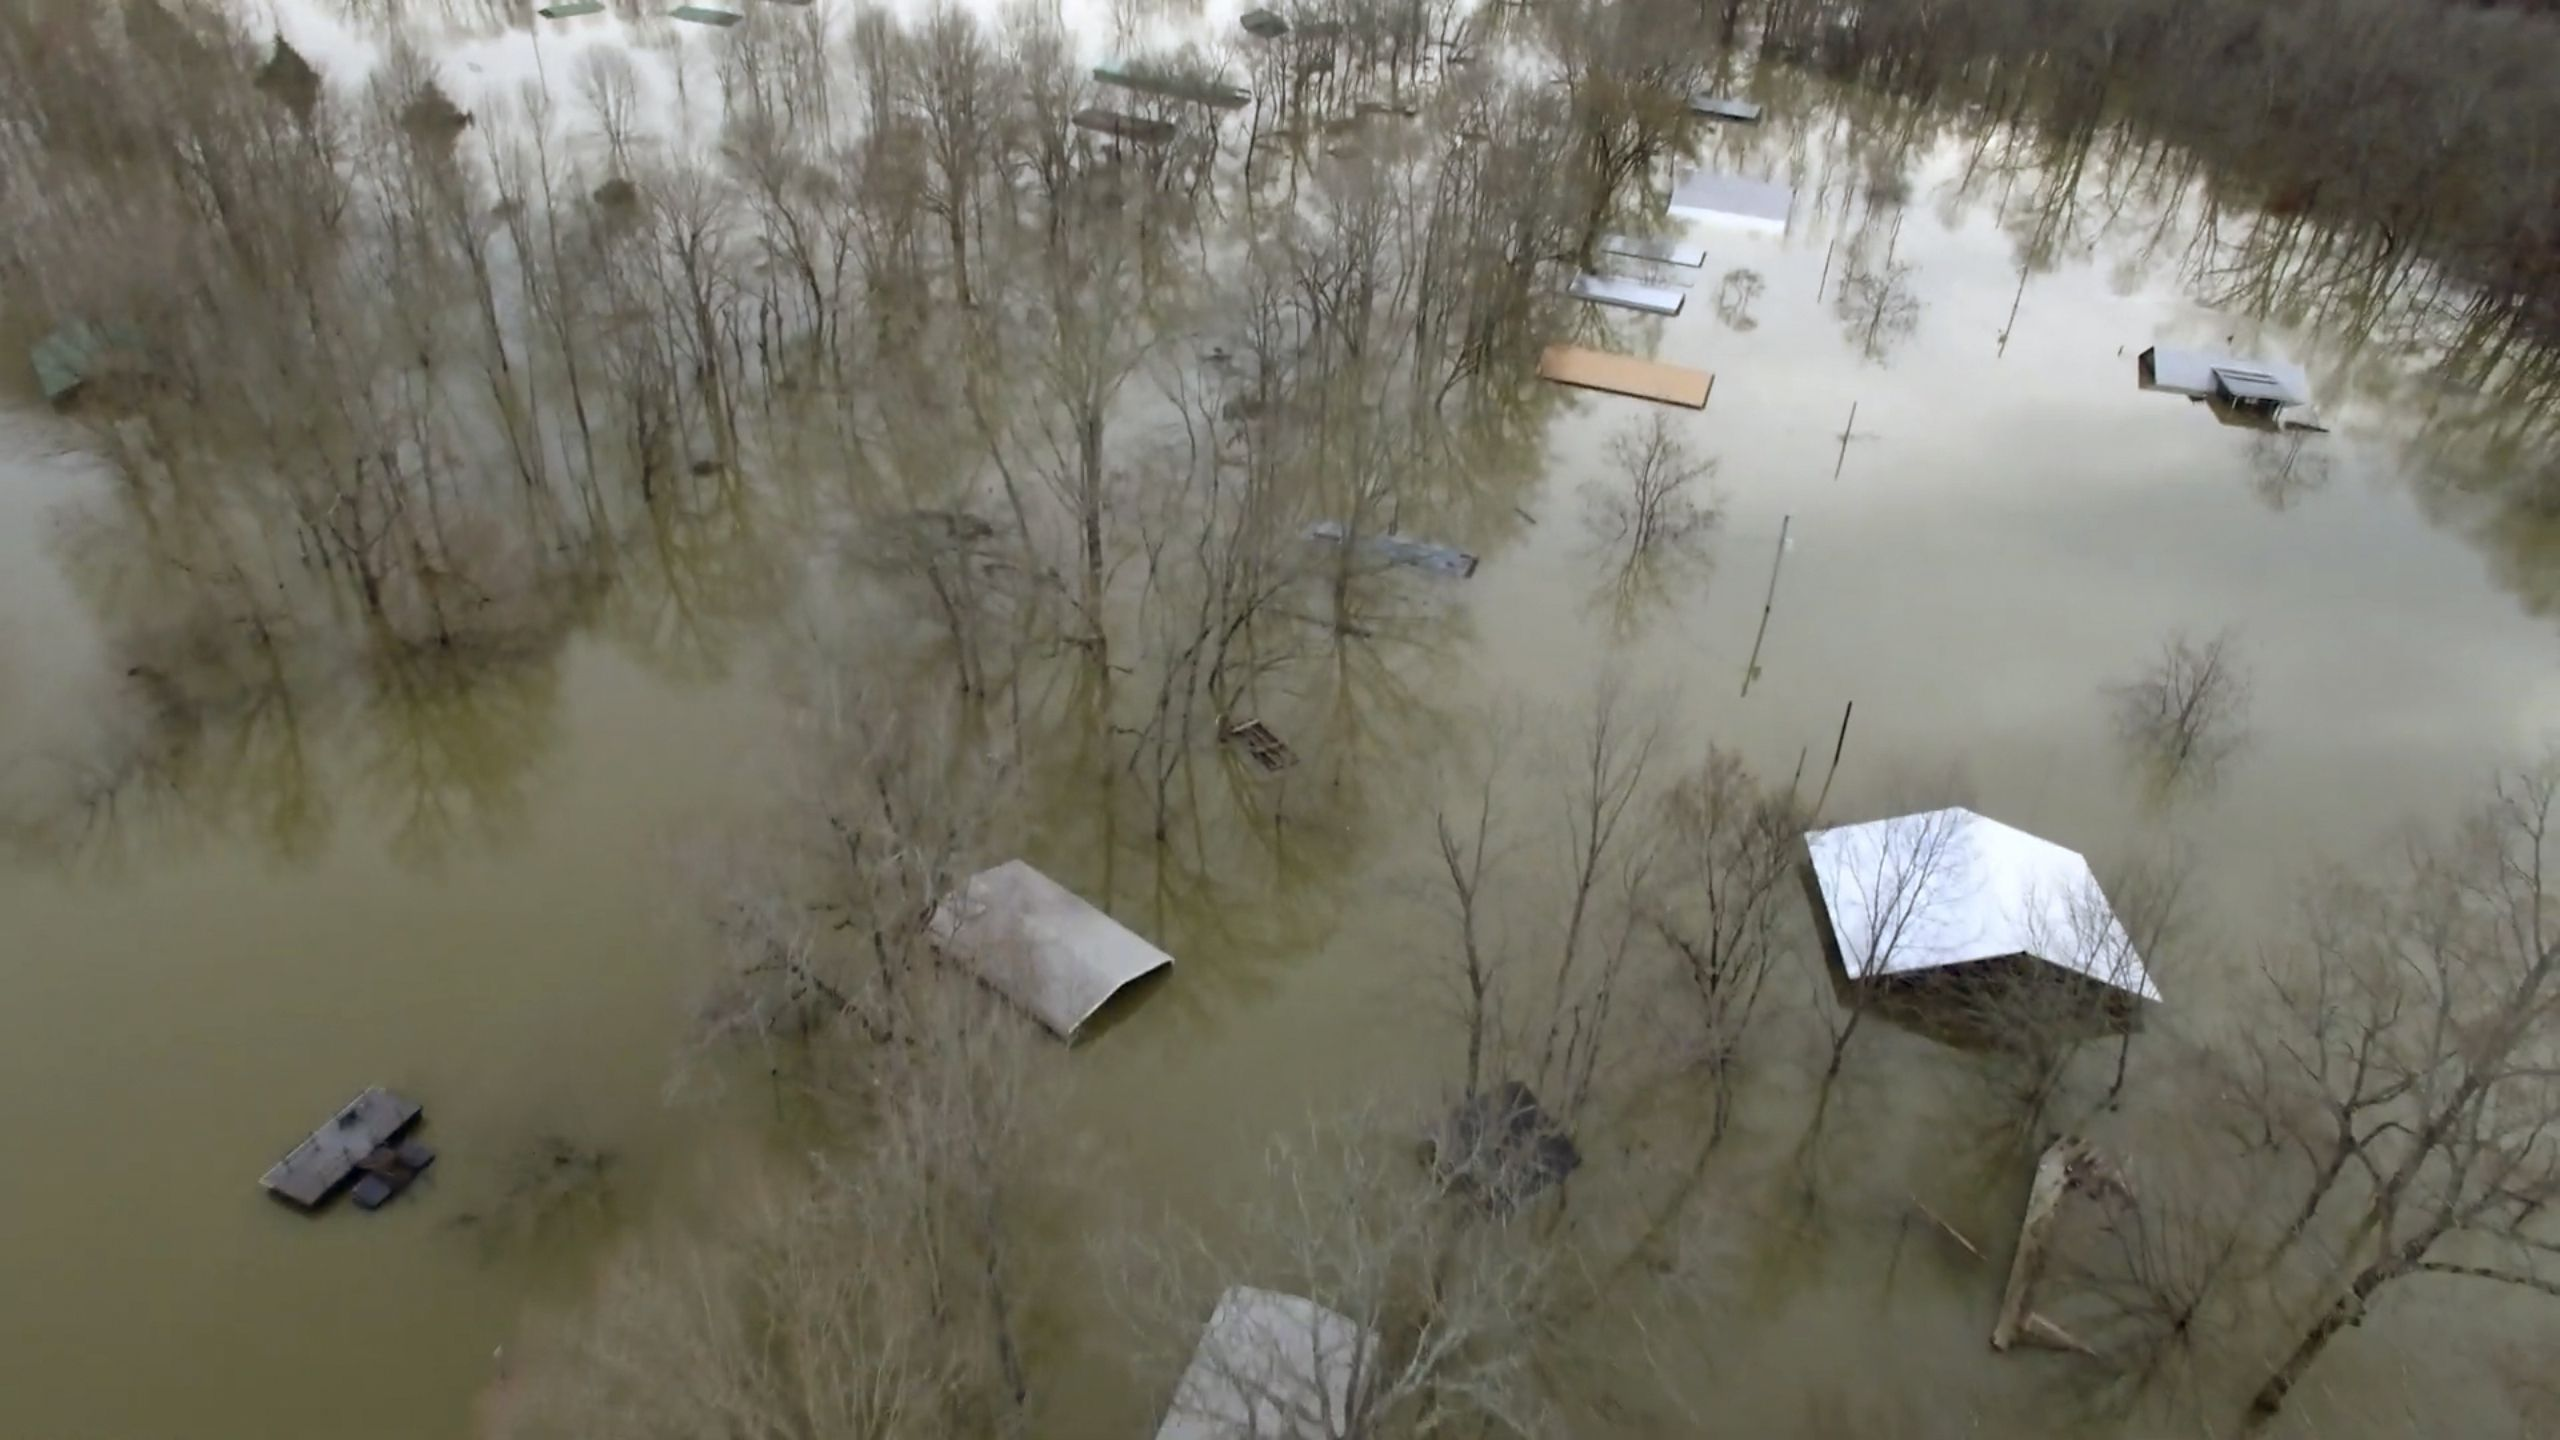 Heavy rain expected to pummel already-flooded Mississippi - Axios